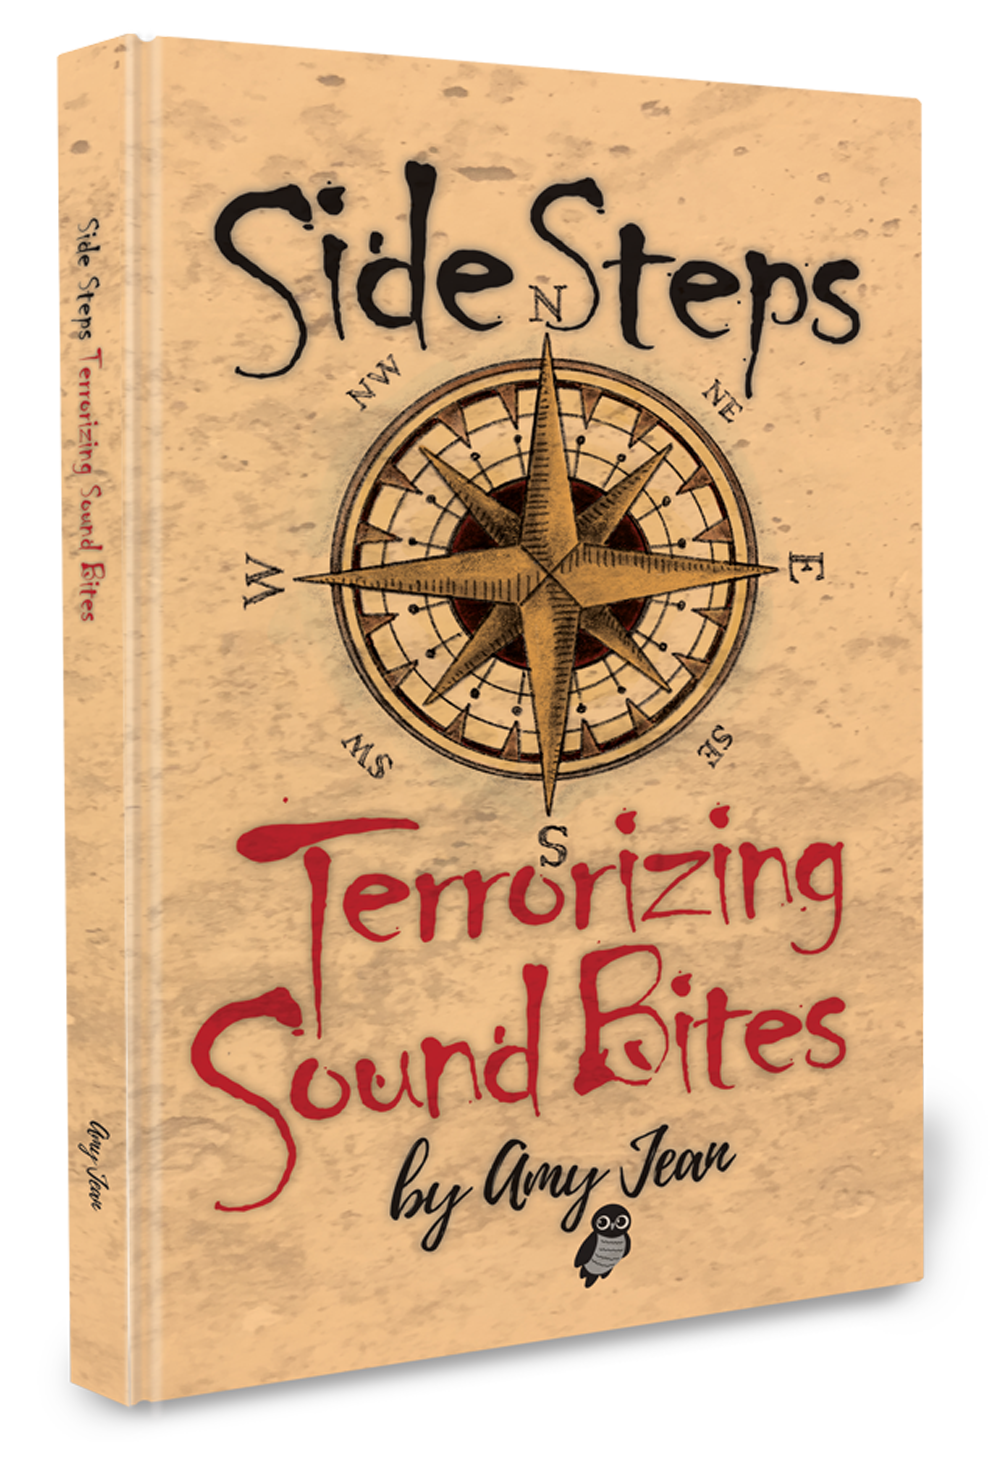 Side Steps Terrorizing Sound Bites by Amy Jean